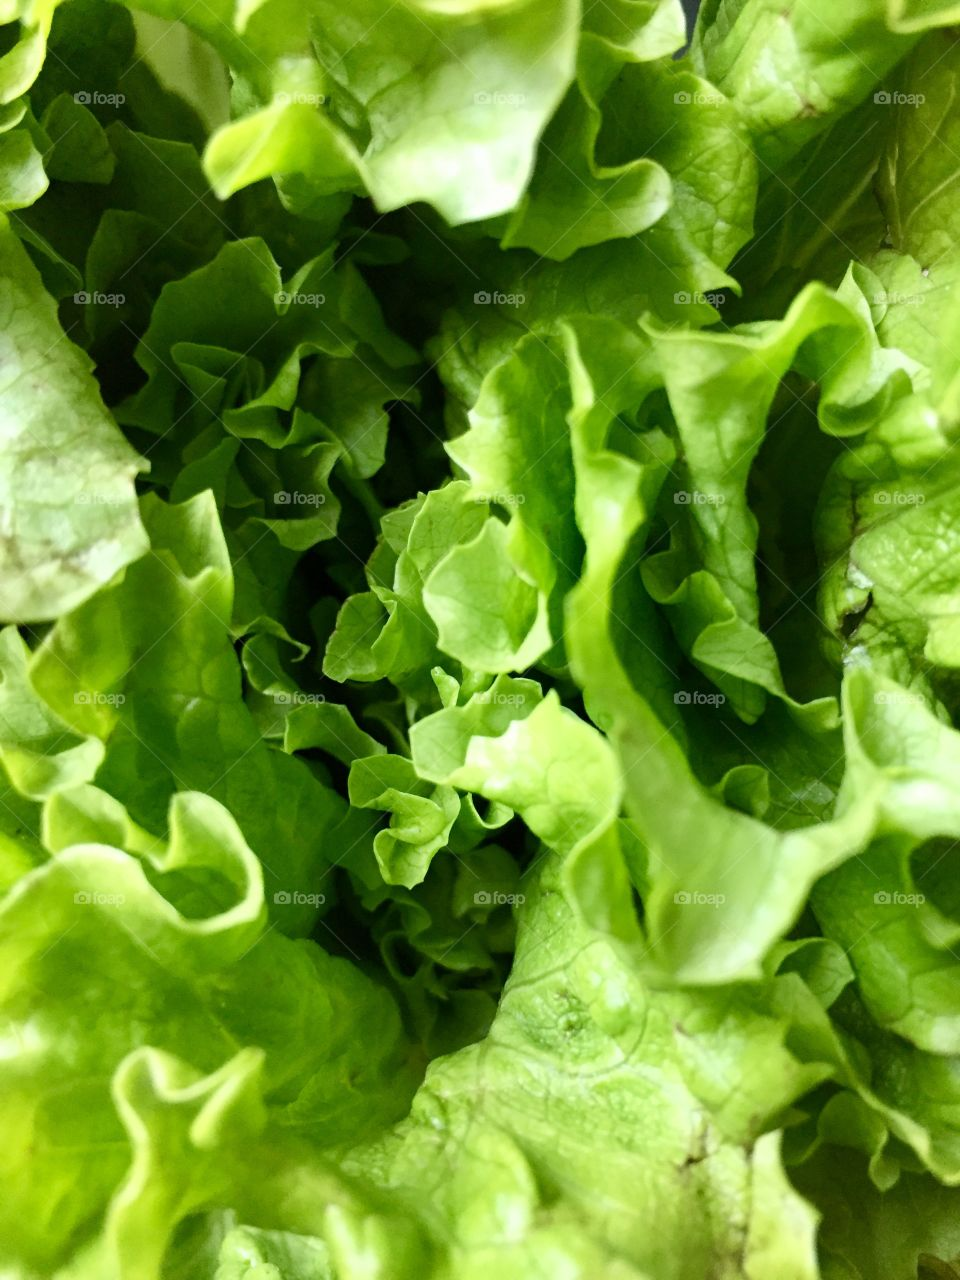 Green Color Story - top of Romaine lettuce leaves